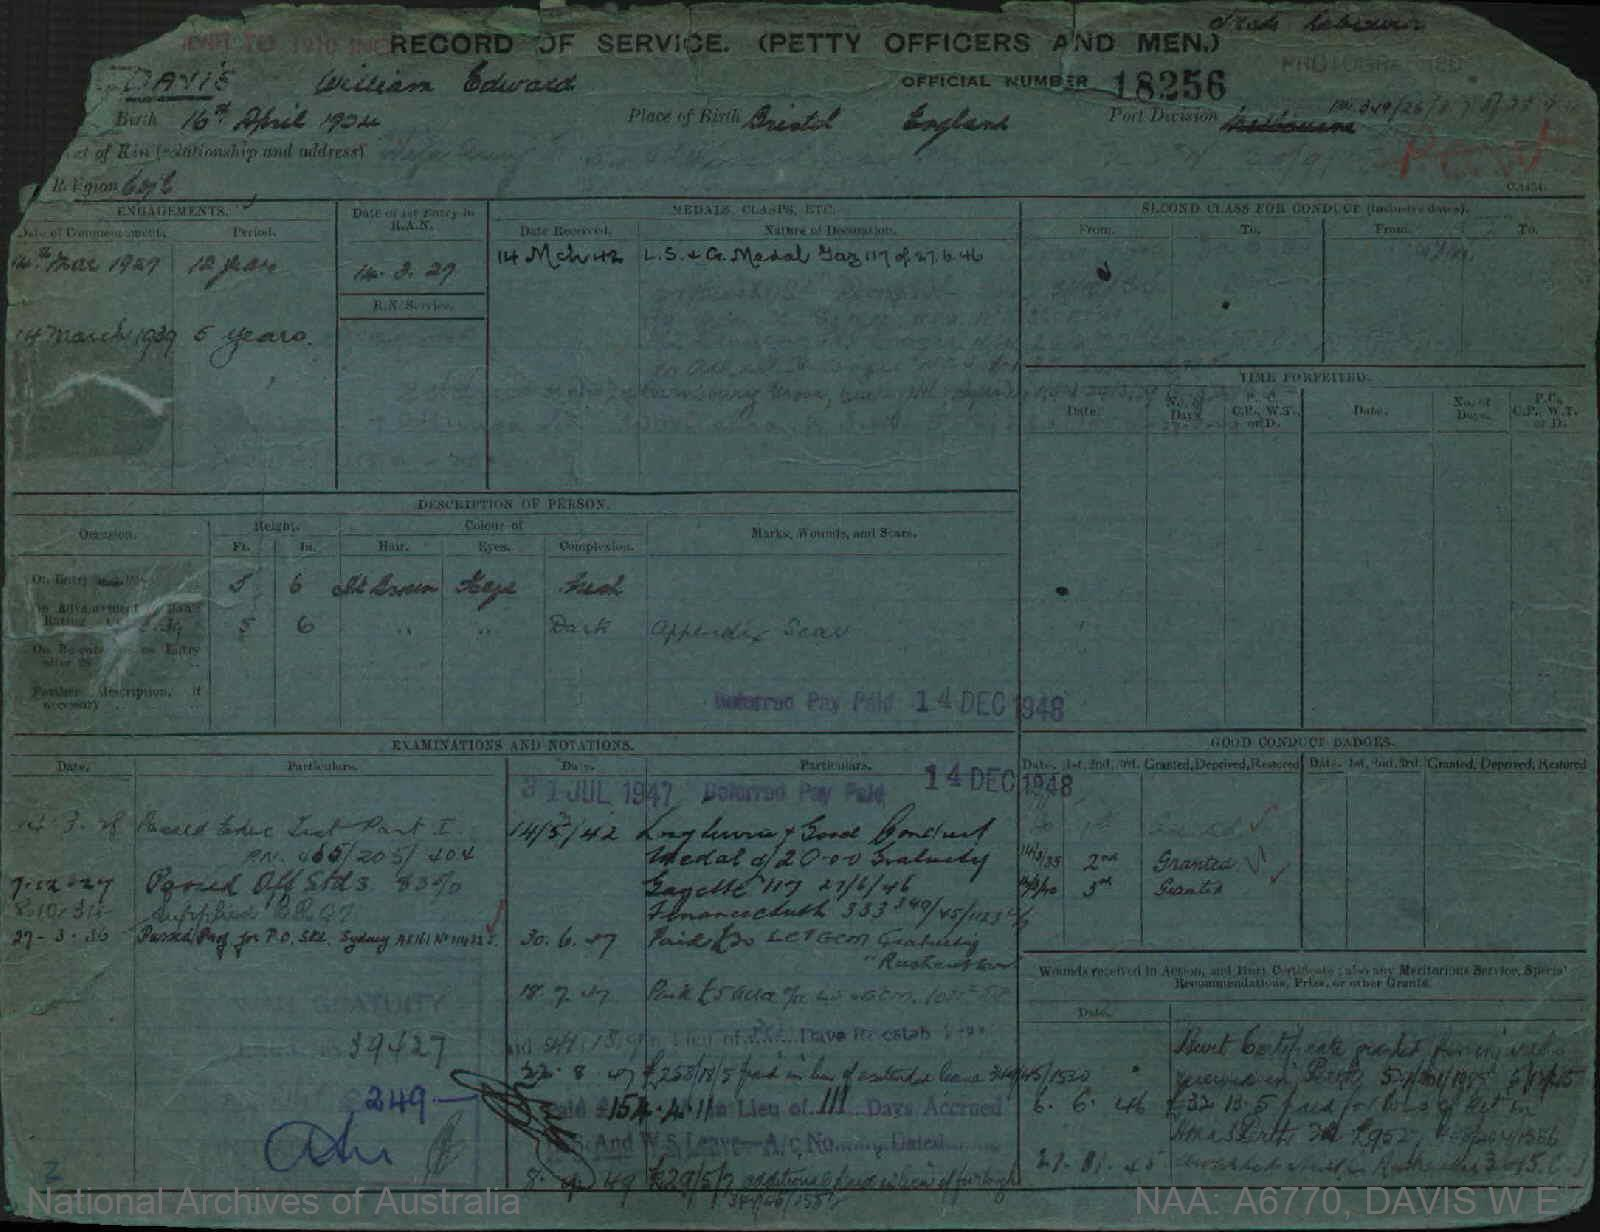 DAVIS WILLIAM EDWARD : Service Number - 18256 : Date of birth - 16 Apr 1904 : Place of birth - BRISTOL ENGLAND : Place of enlistment - Unknown : Next of Kin - DAVIS AMY